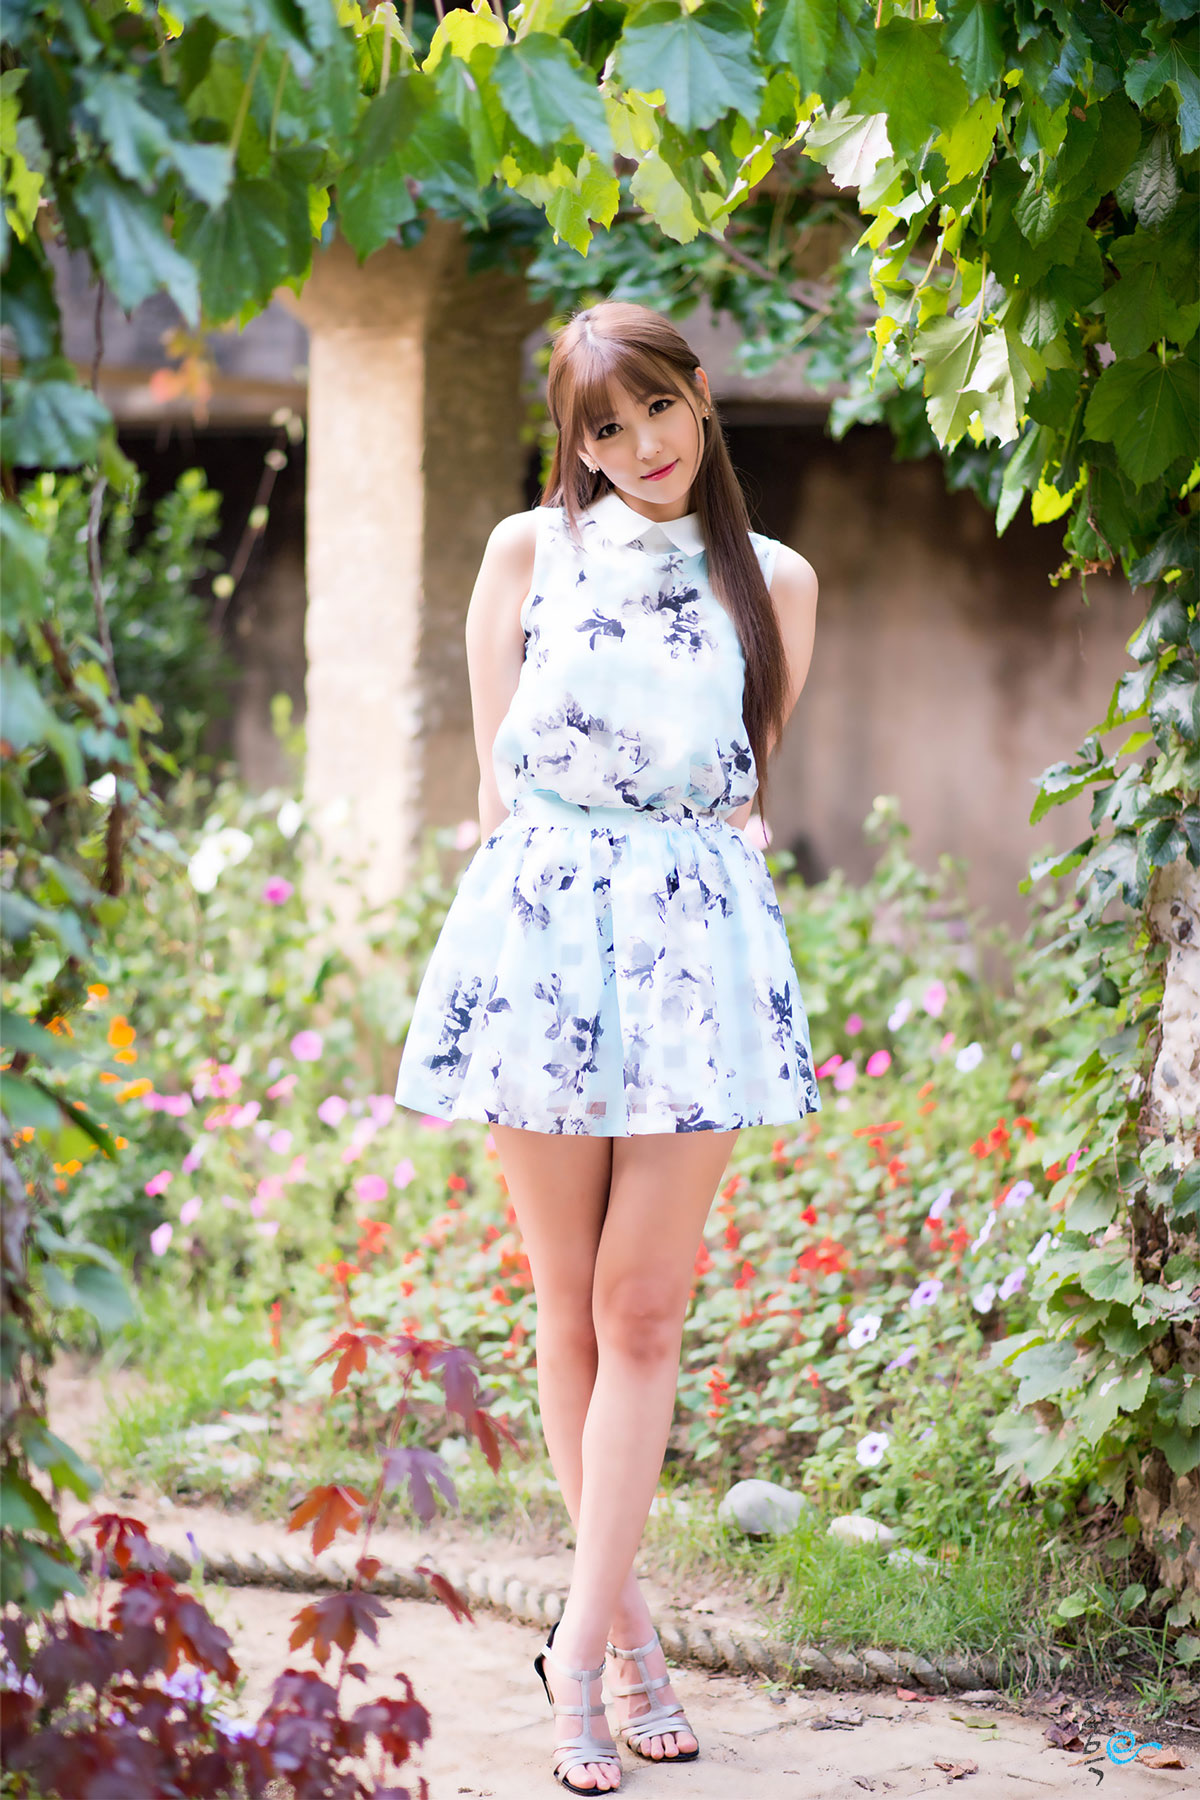 Korean model Lee Eun Hye outdoor photoshoot